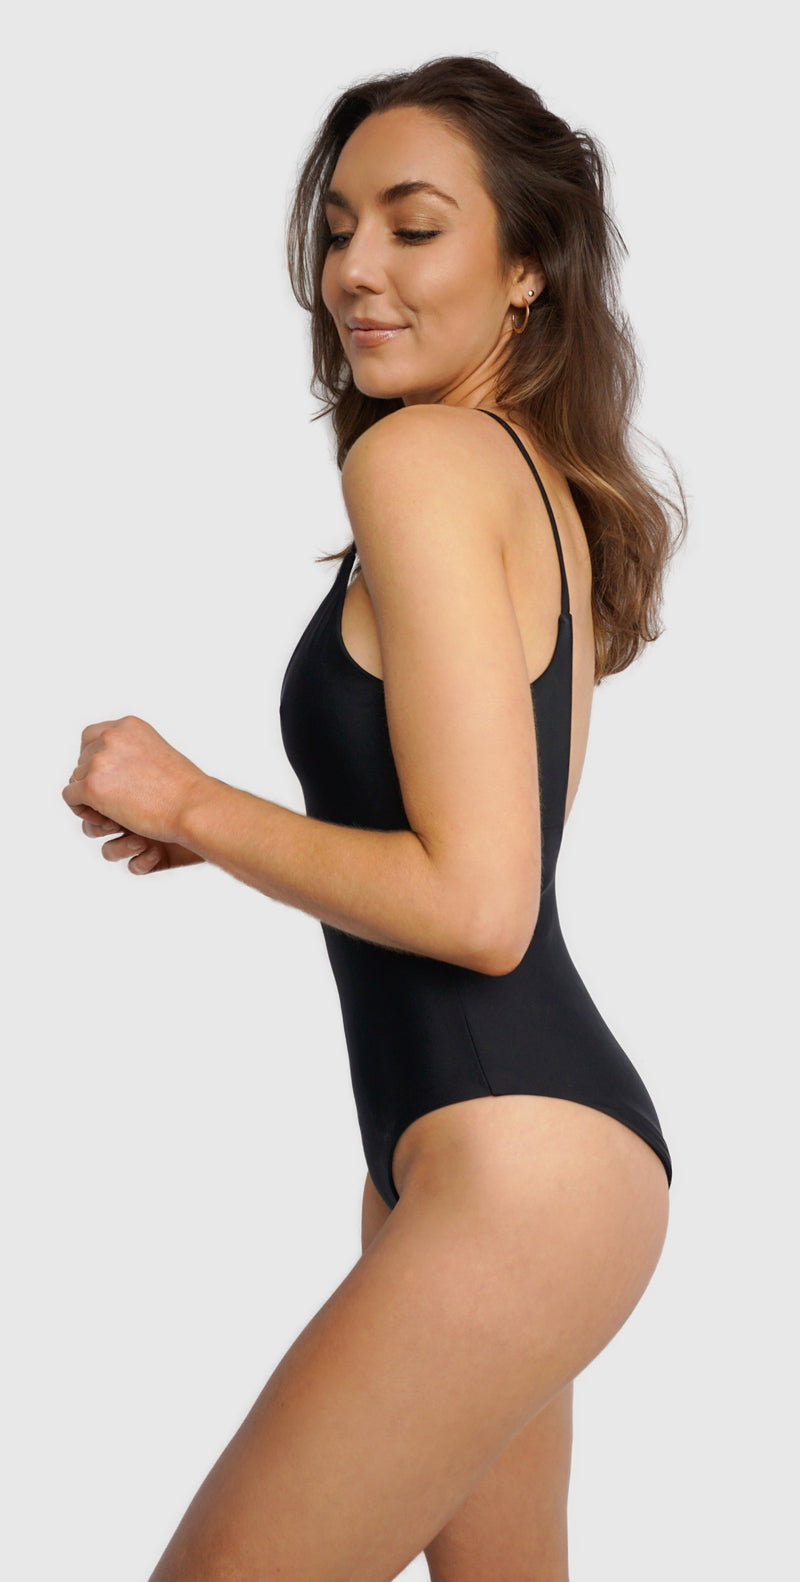 Carling Liski wears Canadian swim brand Prairie Swim chic black, scoop neck, low back one piece bathing suit